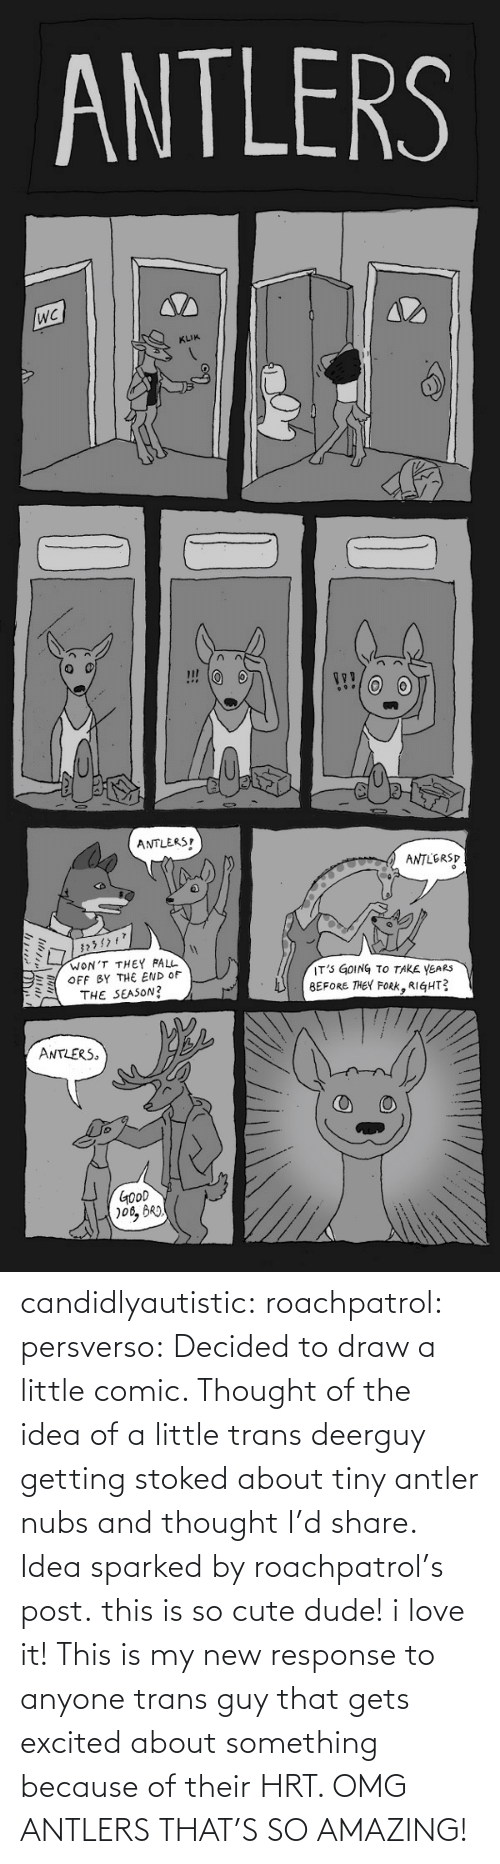 the end of the: ANTLERS  KLIK  ANTLERS  ANTLERSP  WON'T THEY FALL  OFF BY THE END OF  THE SEASON?  IT' GOING TO TAKE YEARS  BEFORE THEY FoRK, RIGHT?  ミ  ANTLERS  GOoD candidlyautistic: roachpatrol:  persverso:  Decided to draw a little comic. Thought of the idea of a little trans deerguy getting stoked about tiny antler nubs and thought I'd share. Idea sparked by roachpatrol's post.  this is so cute dude! i love it!  This is my new response to anyone trans guy that gets excited about something because of their HRT. OMG ANTLERS THAT'S SO AMAZING!